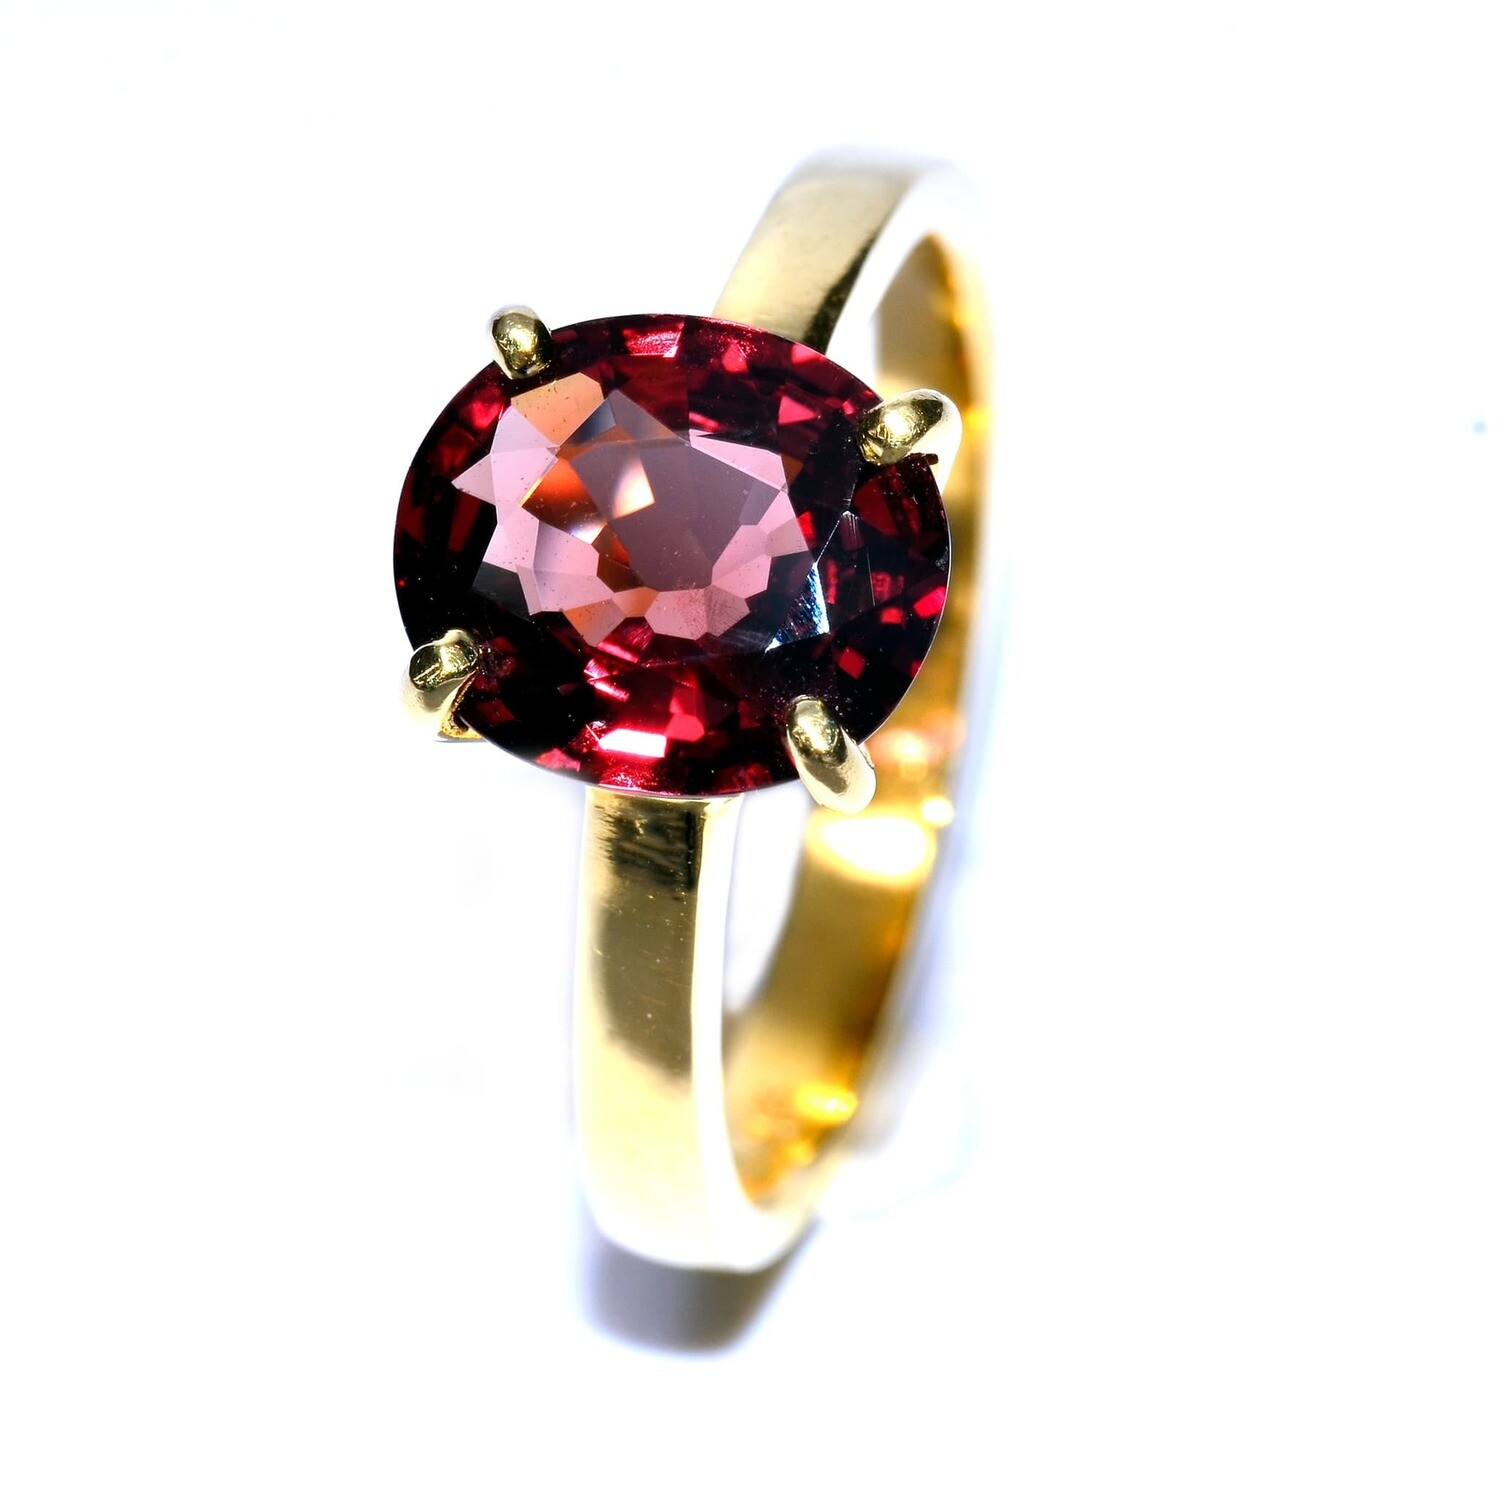 Spinel Ring in 18K Yellow Gold Setting - Red Spinel Engagement Ring Handmade